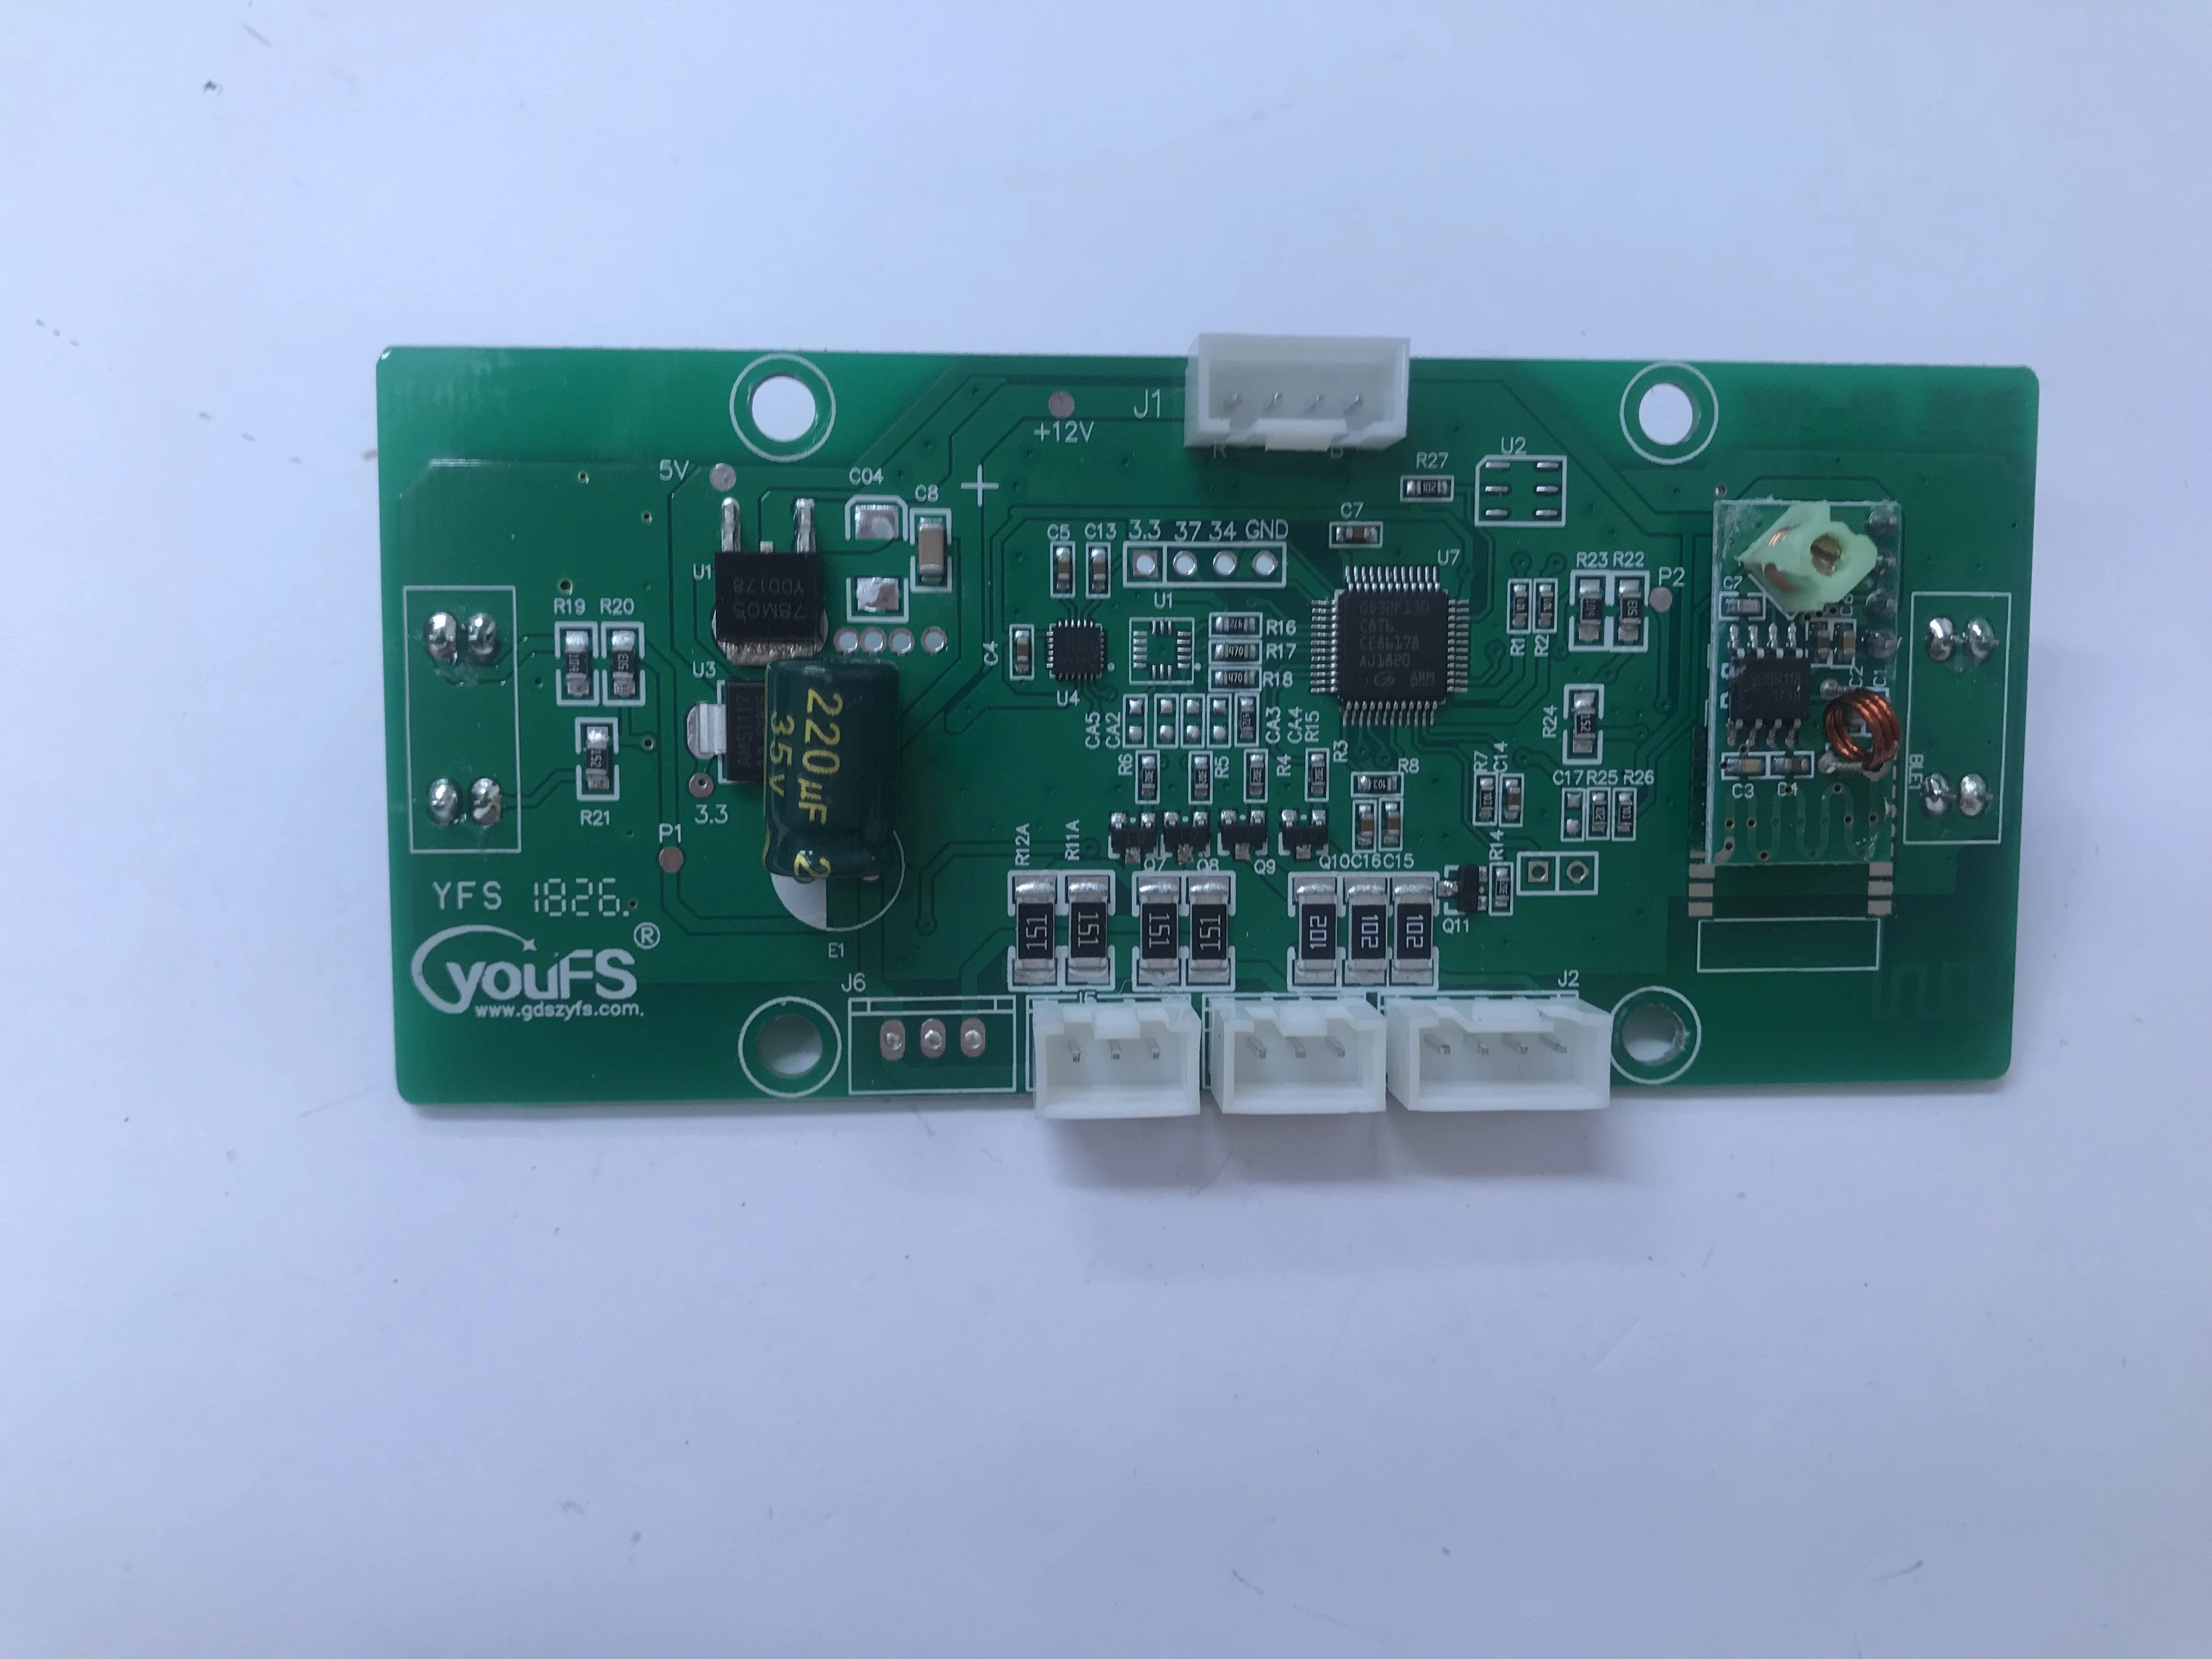 GYRO CIRCUIT BOARD (SOCKET TYPE) - YOUFS-18:26 + REMOTE AERIAL